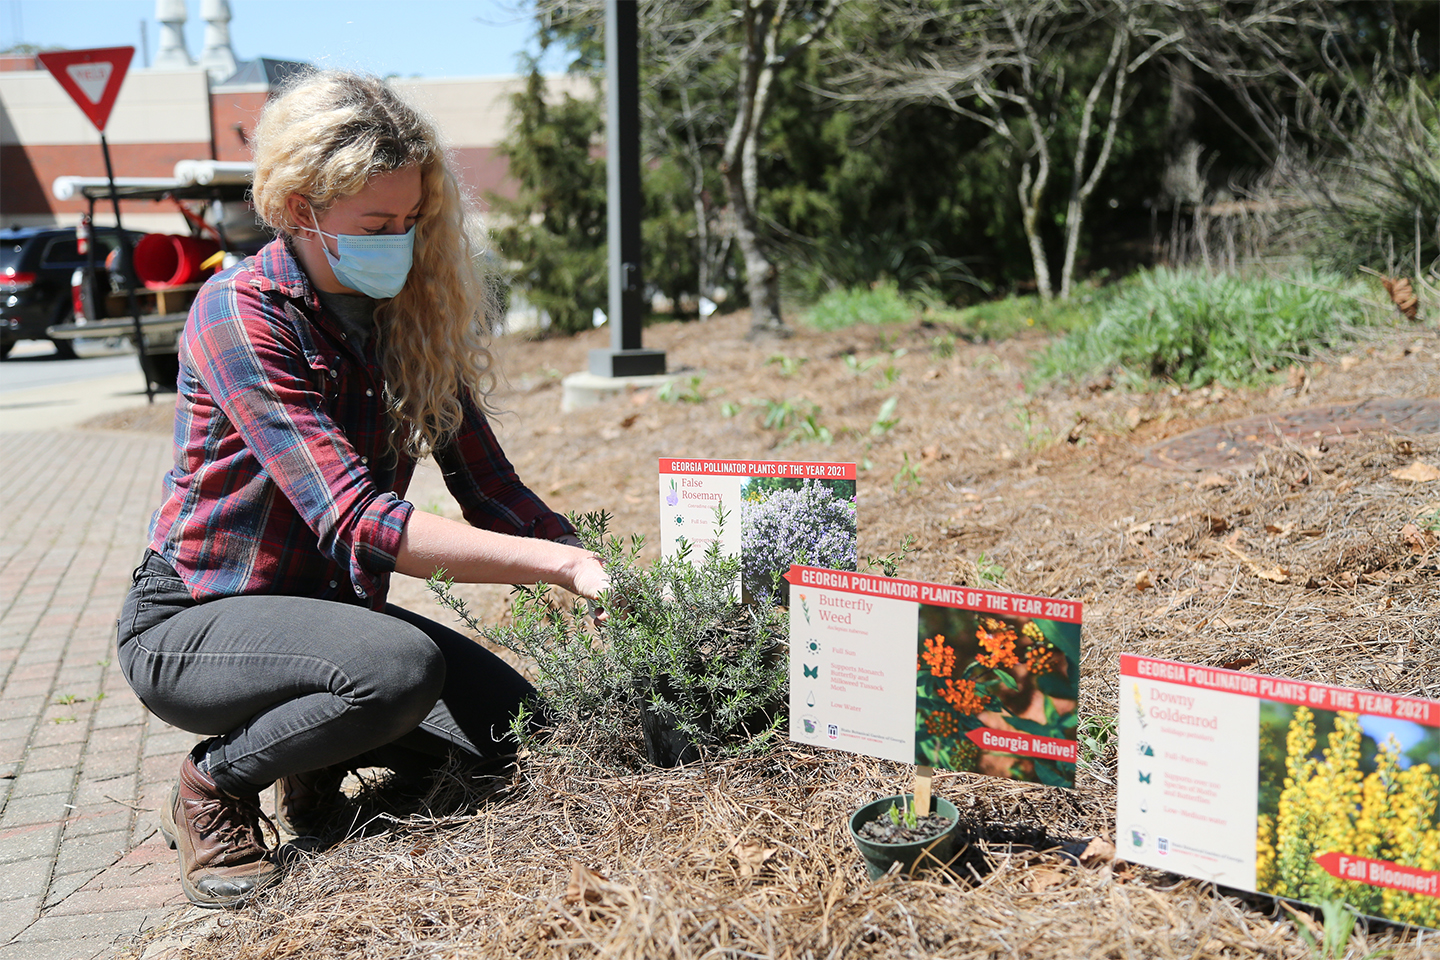 Lauren Muller kneels next to a plant bed with signs depicting pollinator plants